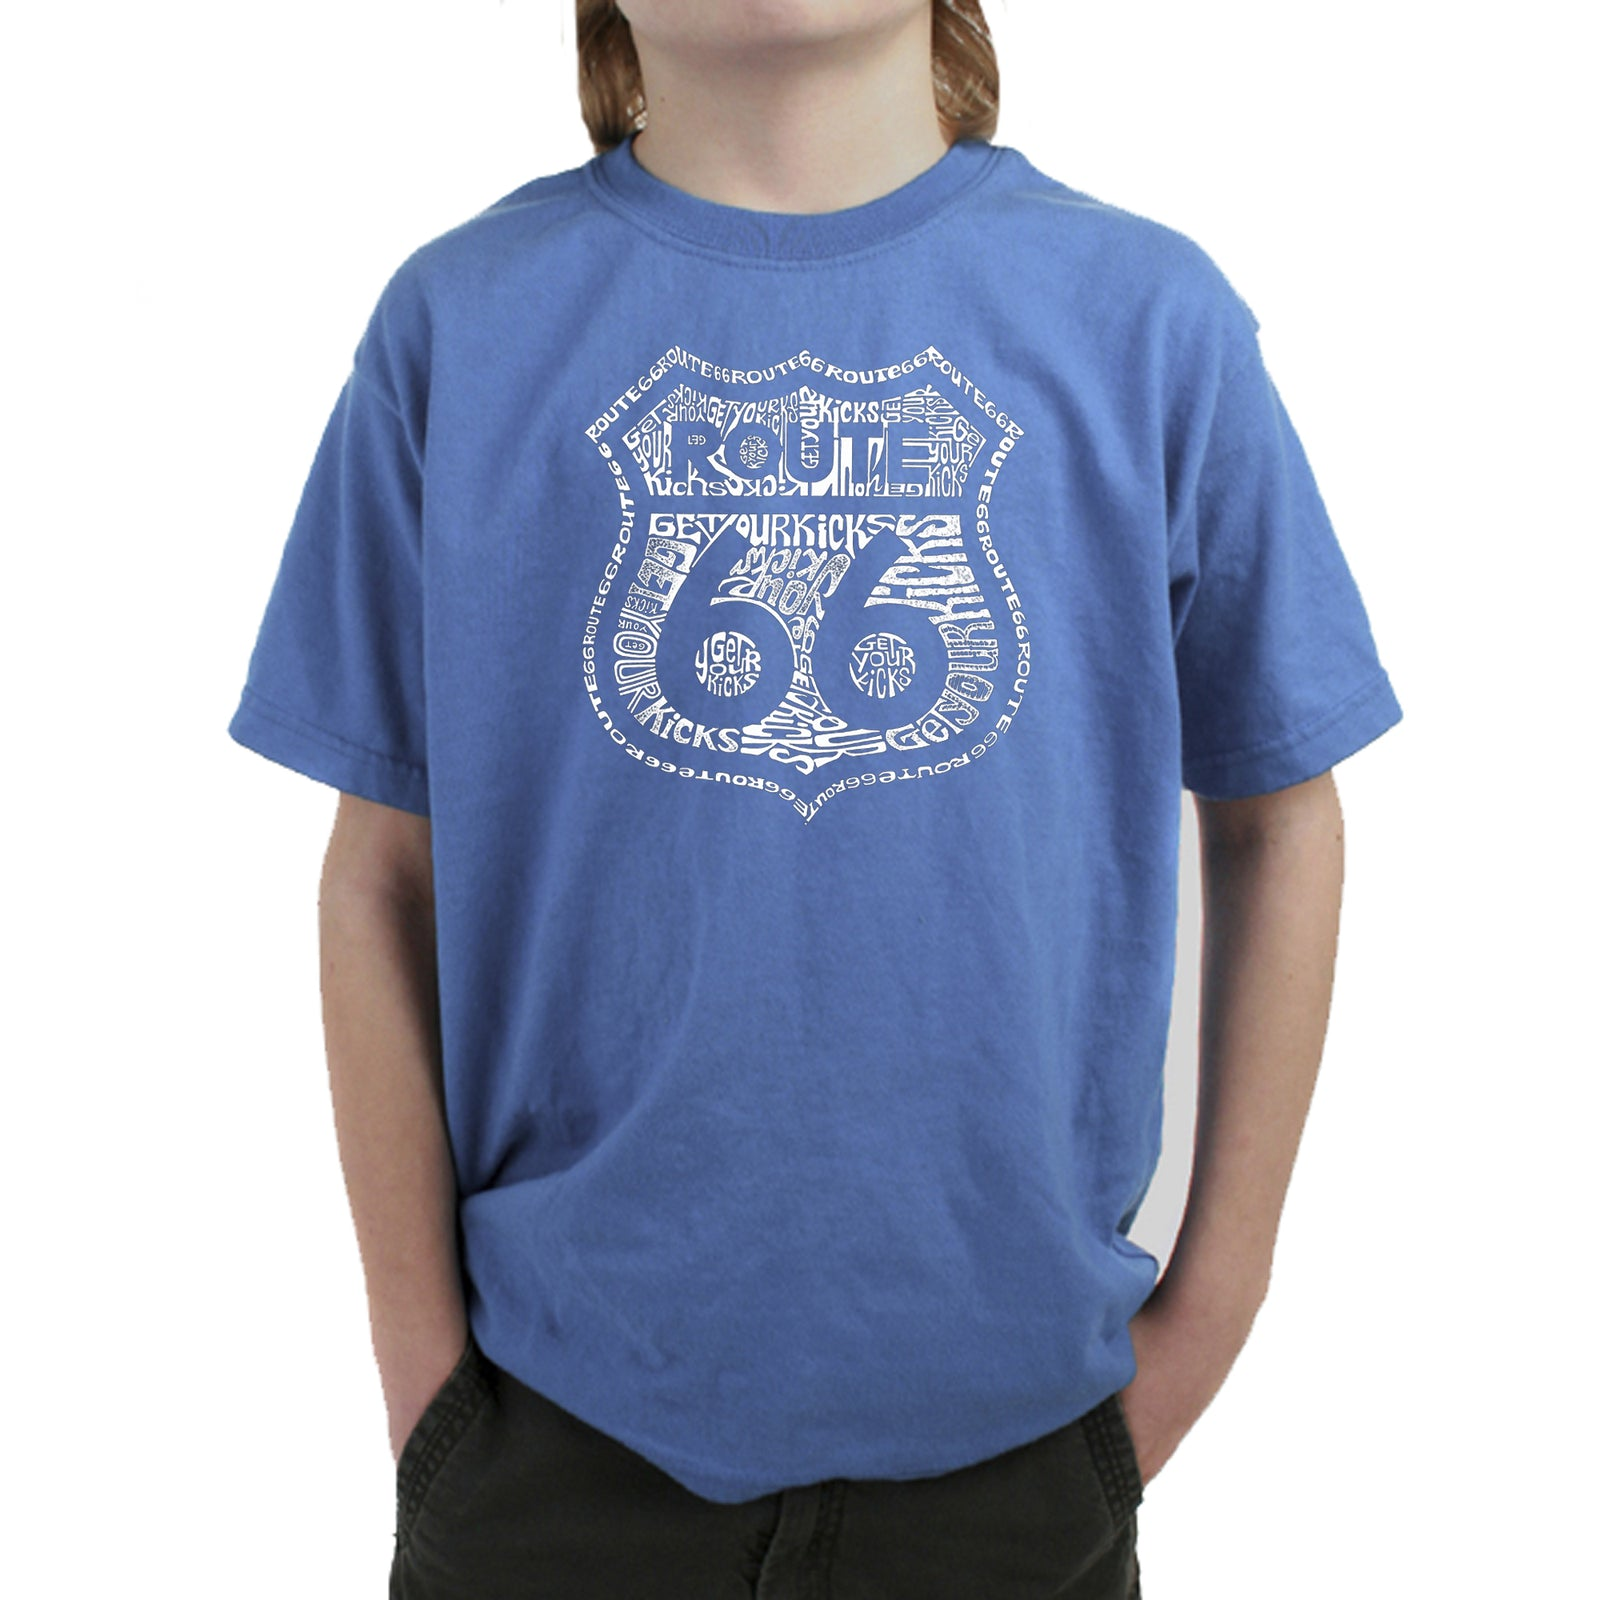 Boy's T-shirt - Get Your Kicks on Route 66